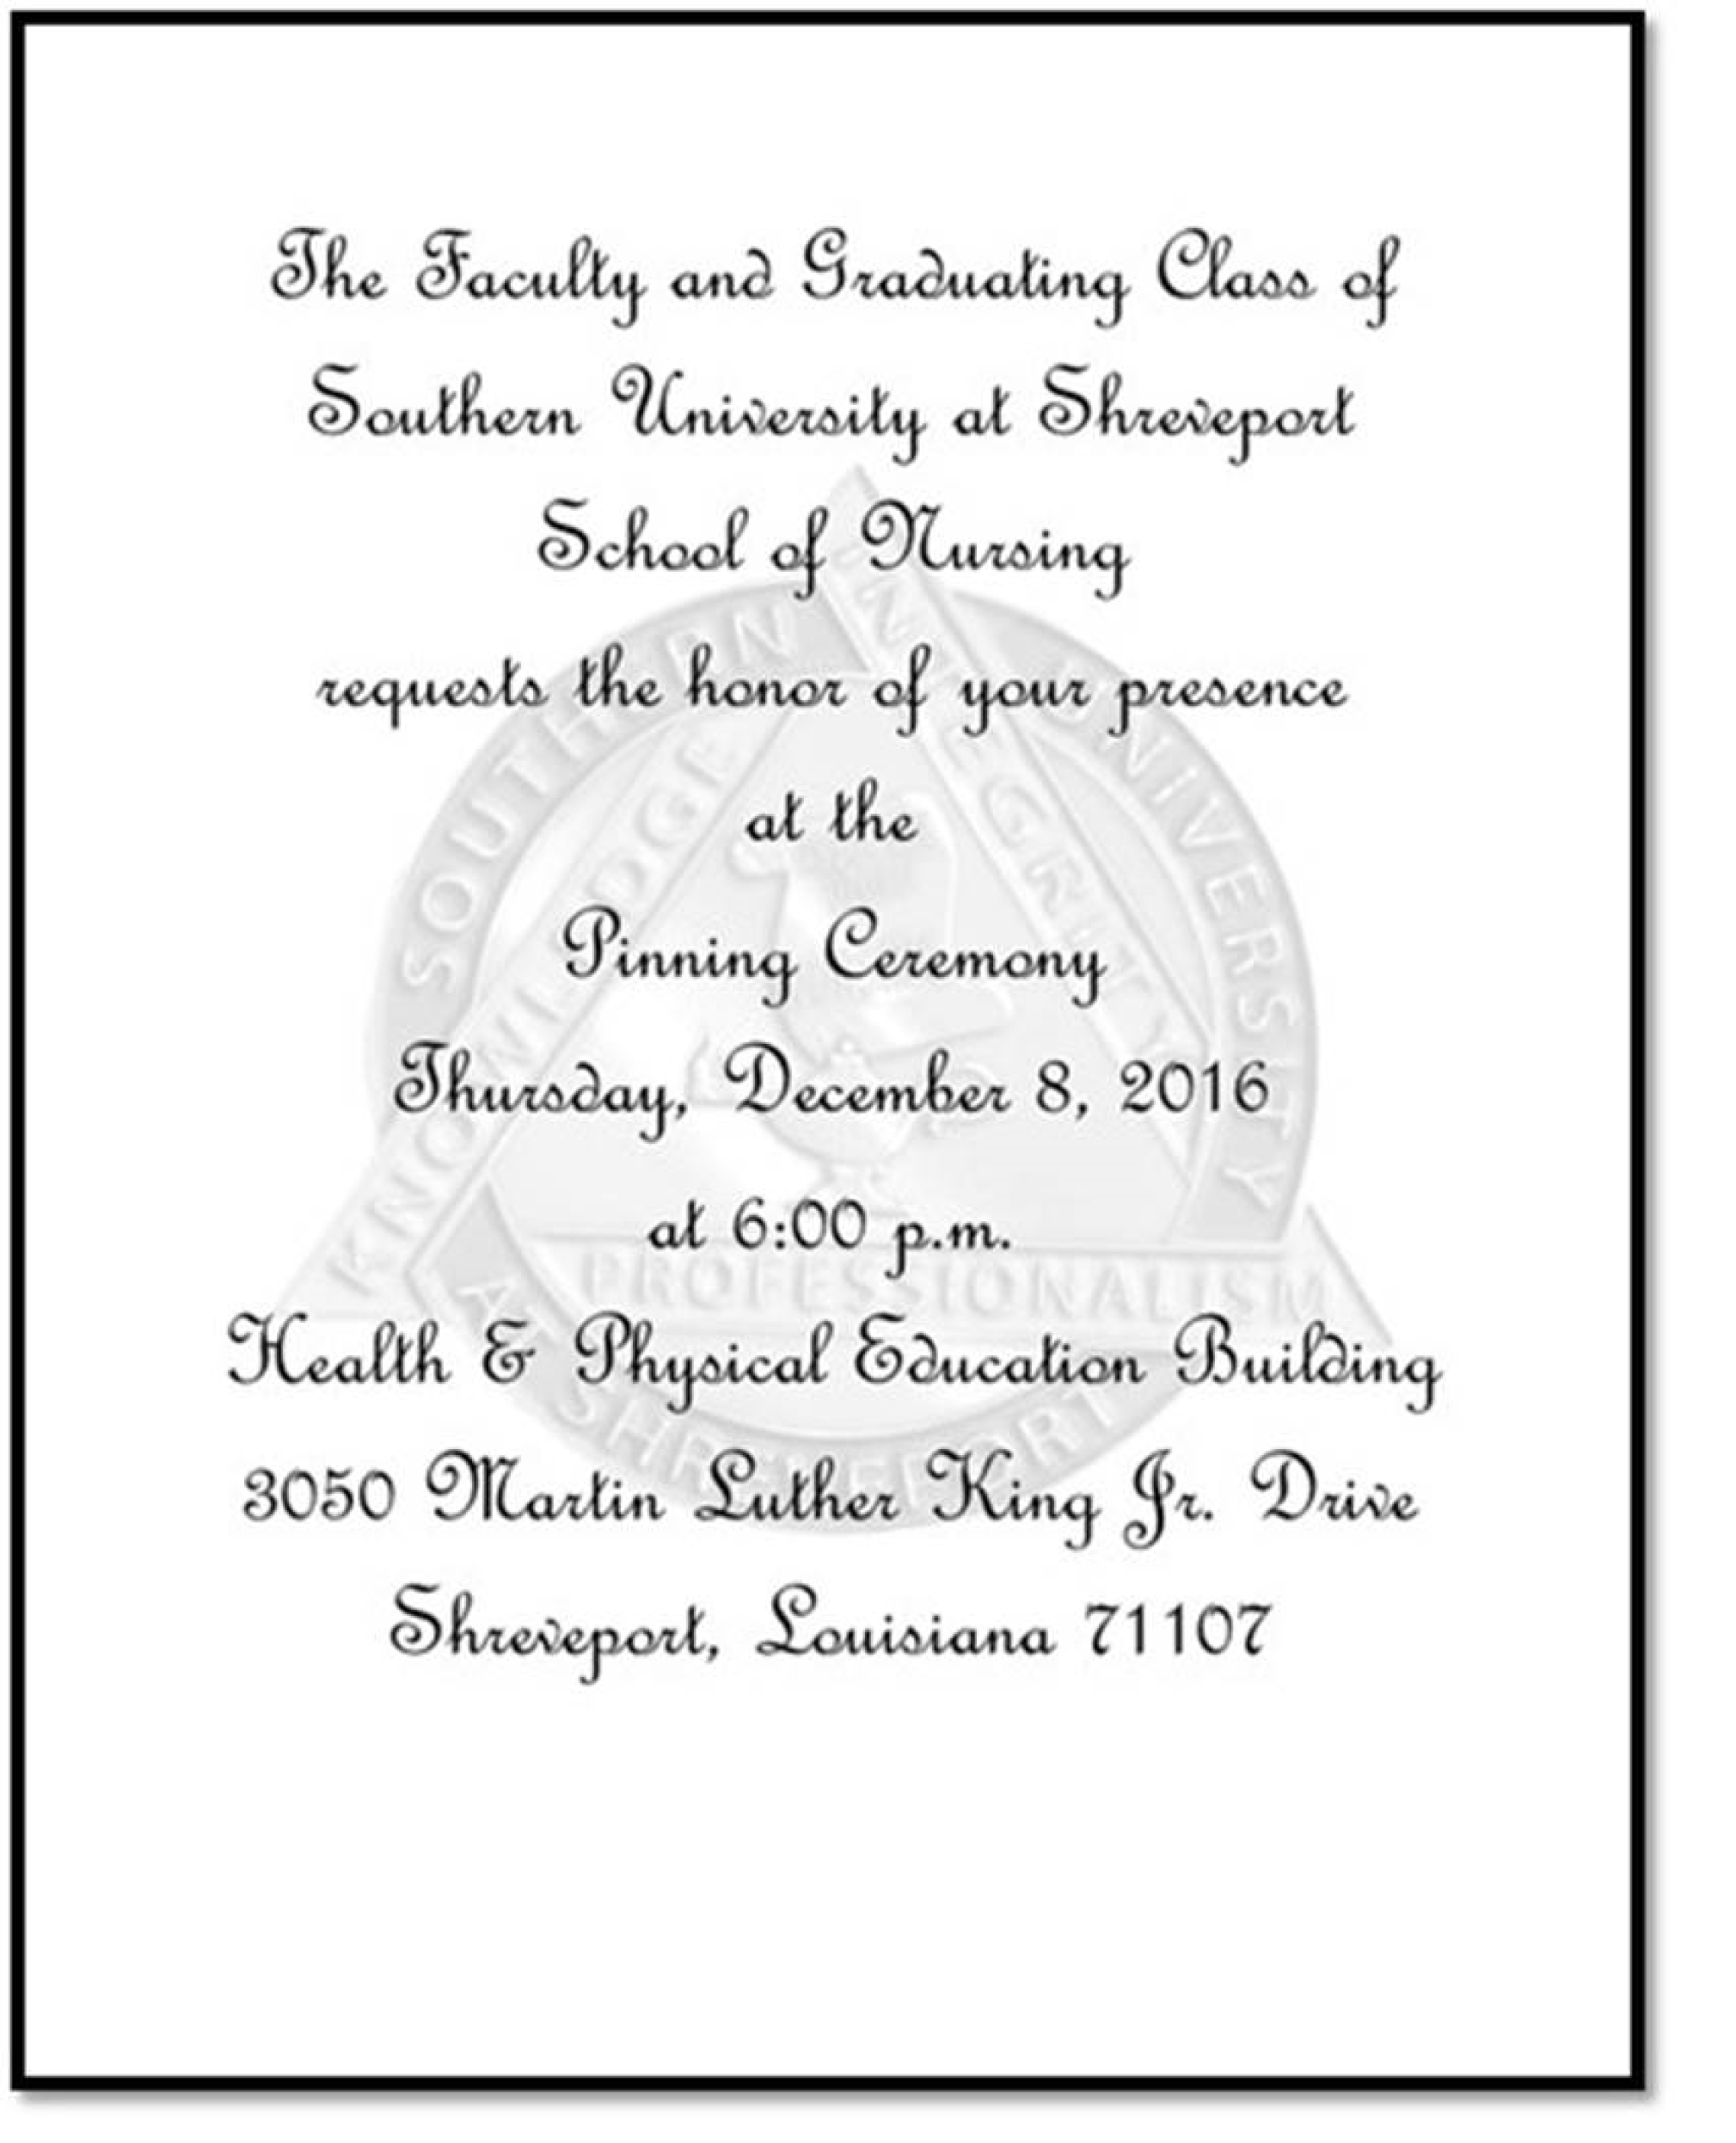 School Of Nursing Pinning Ceremony Southern University Shreveport